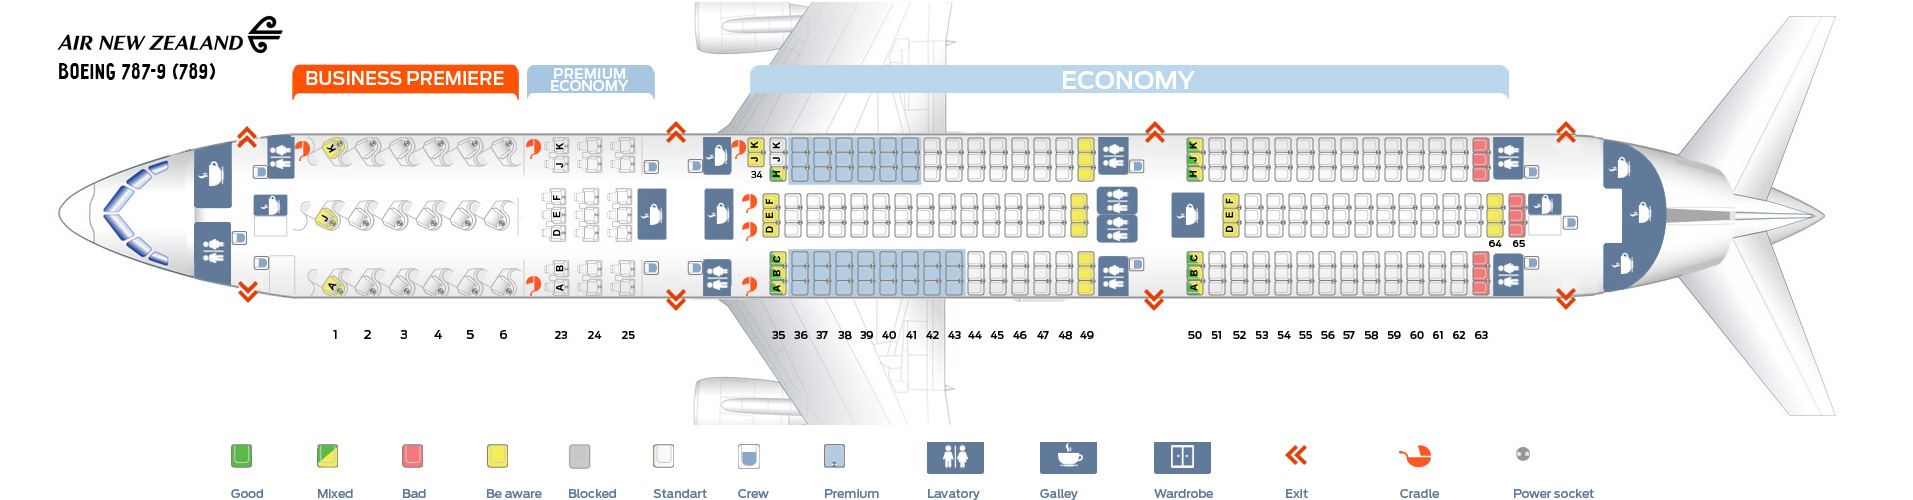 Seat Map Boeing 787-9 Air New Zealand